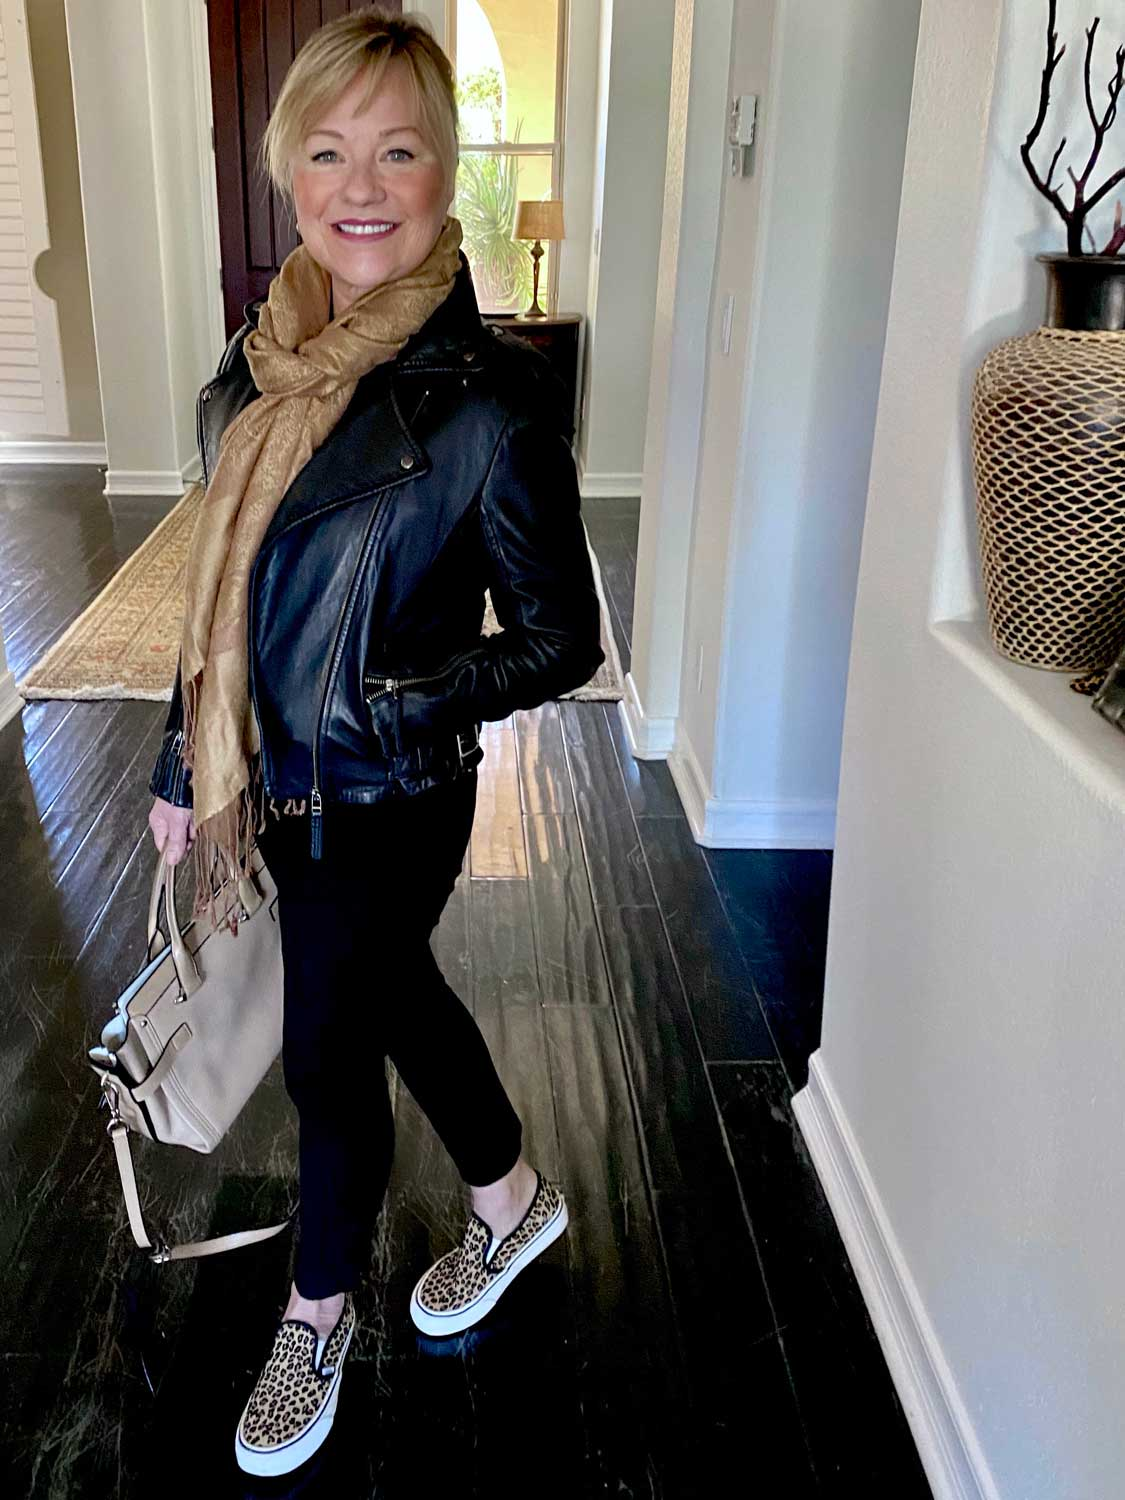 Mary Ann Pickett in Madewell Leather Jacket and Van's Leopard print sneakers